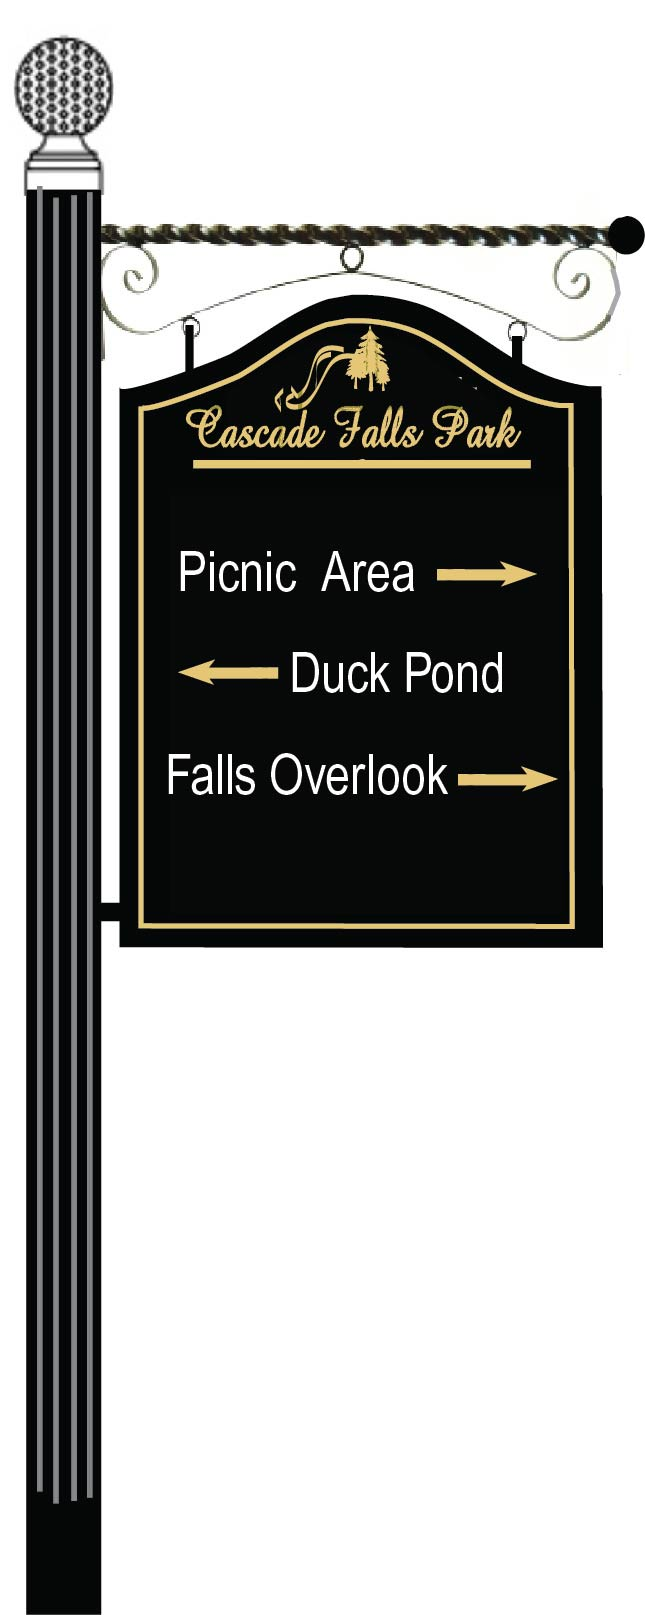 GA16580 - Design of Wood or HDU Post and Bracket Sign for Park Picnic Area, Duck Pond and Falls Overlook